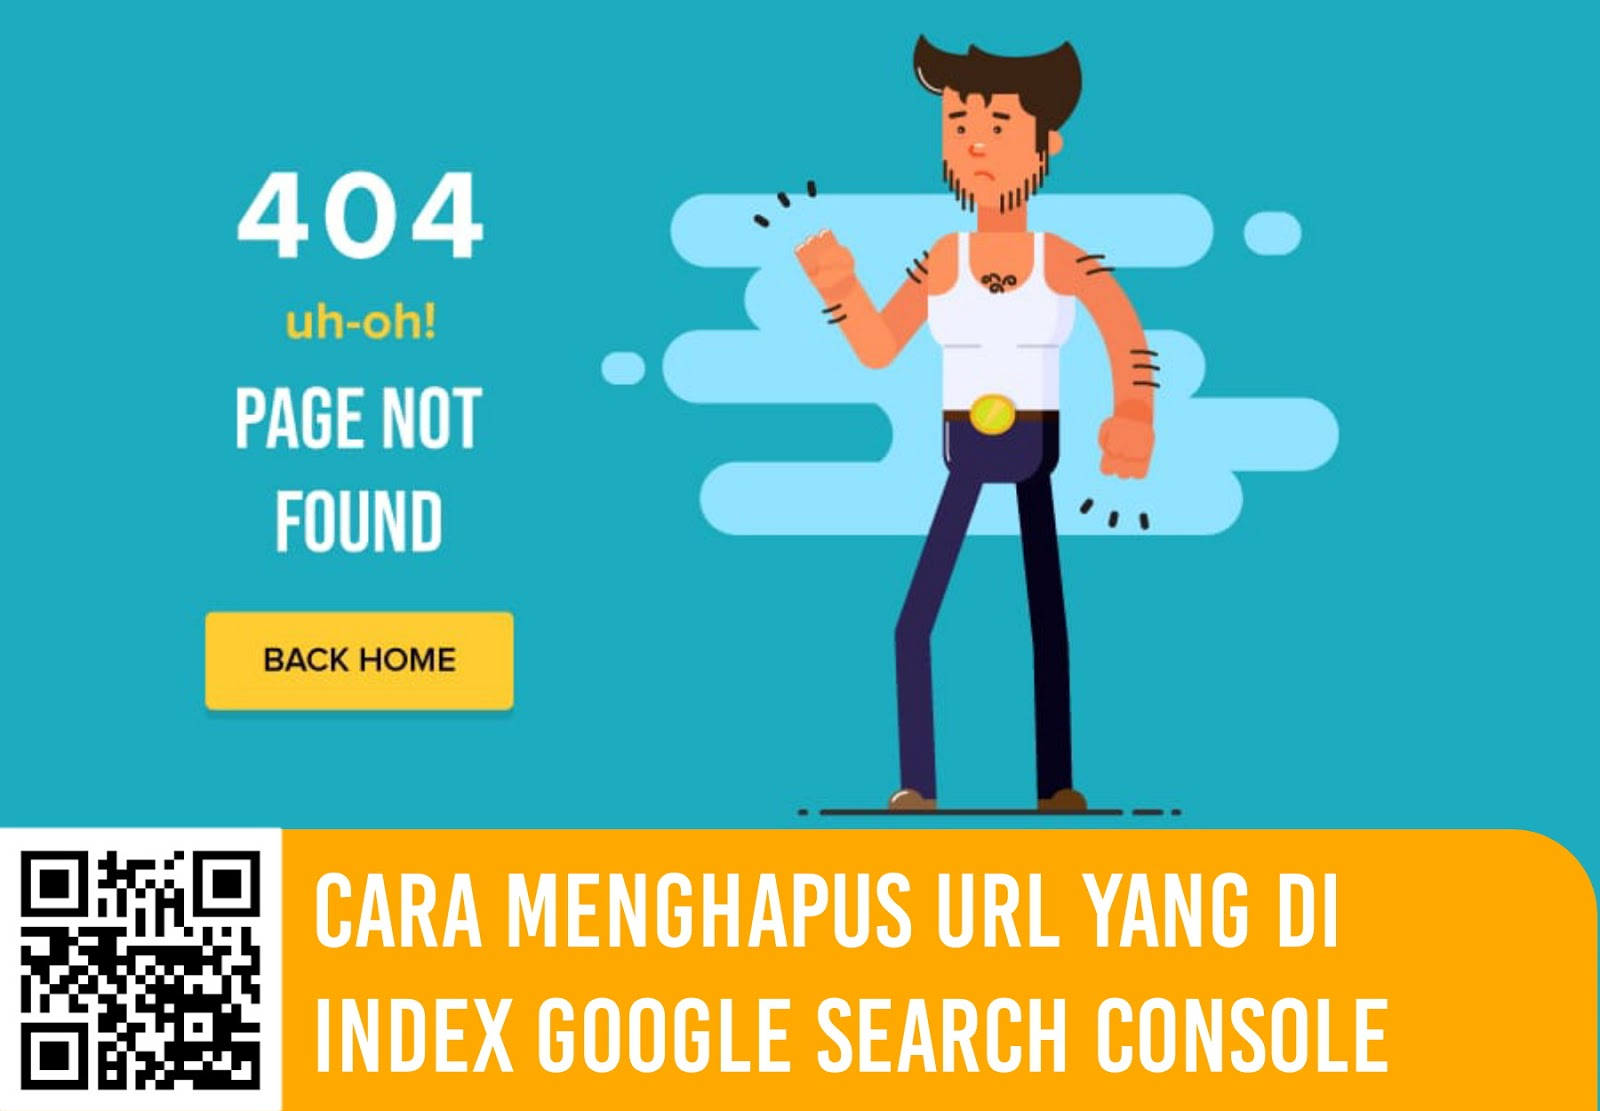 Cara Menghapus URL yang di Index Google Search Console